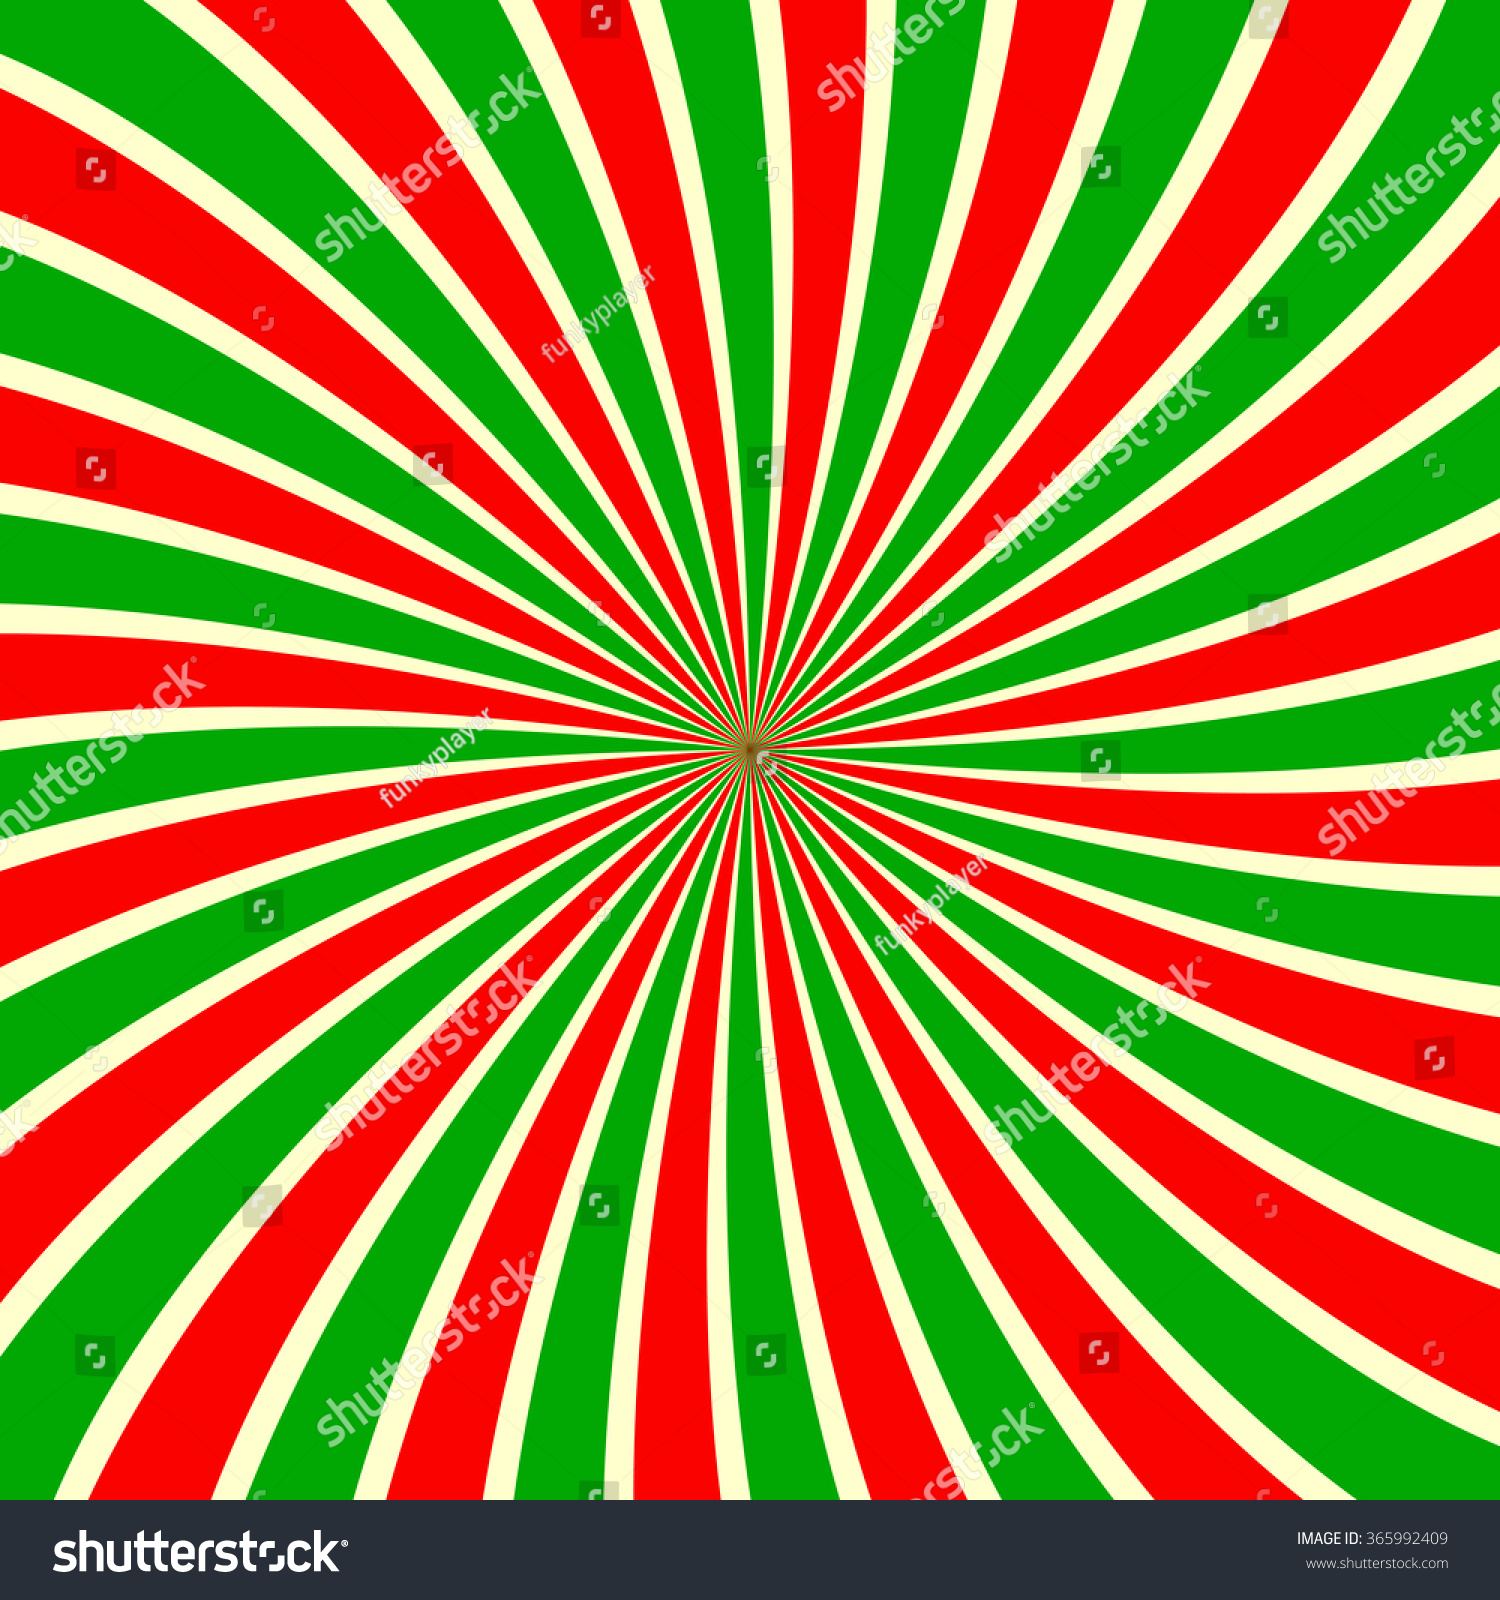 Red Green White Sunbeam Background Striped Stock Vector